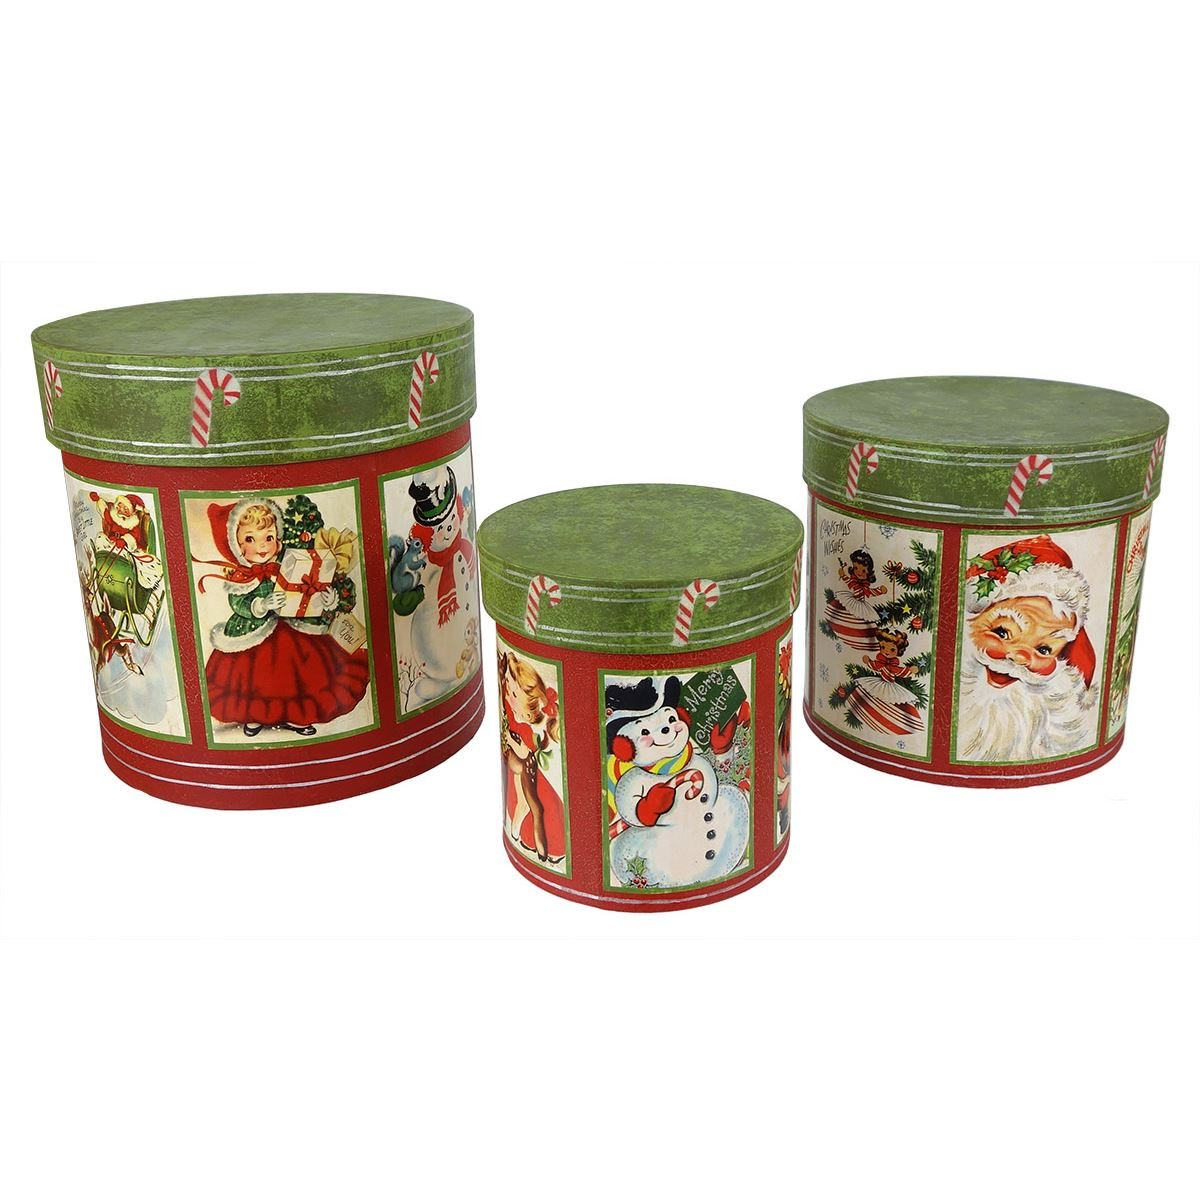 Retro Christmas Nesting Boxes Set/3 by Bethany Lowe | Traditions